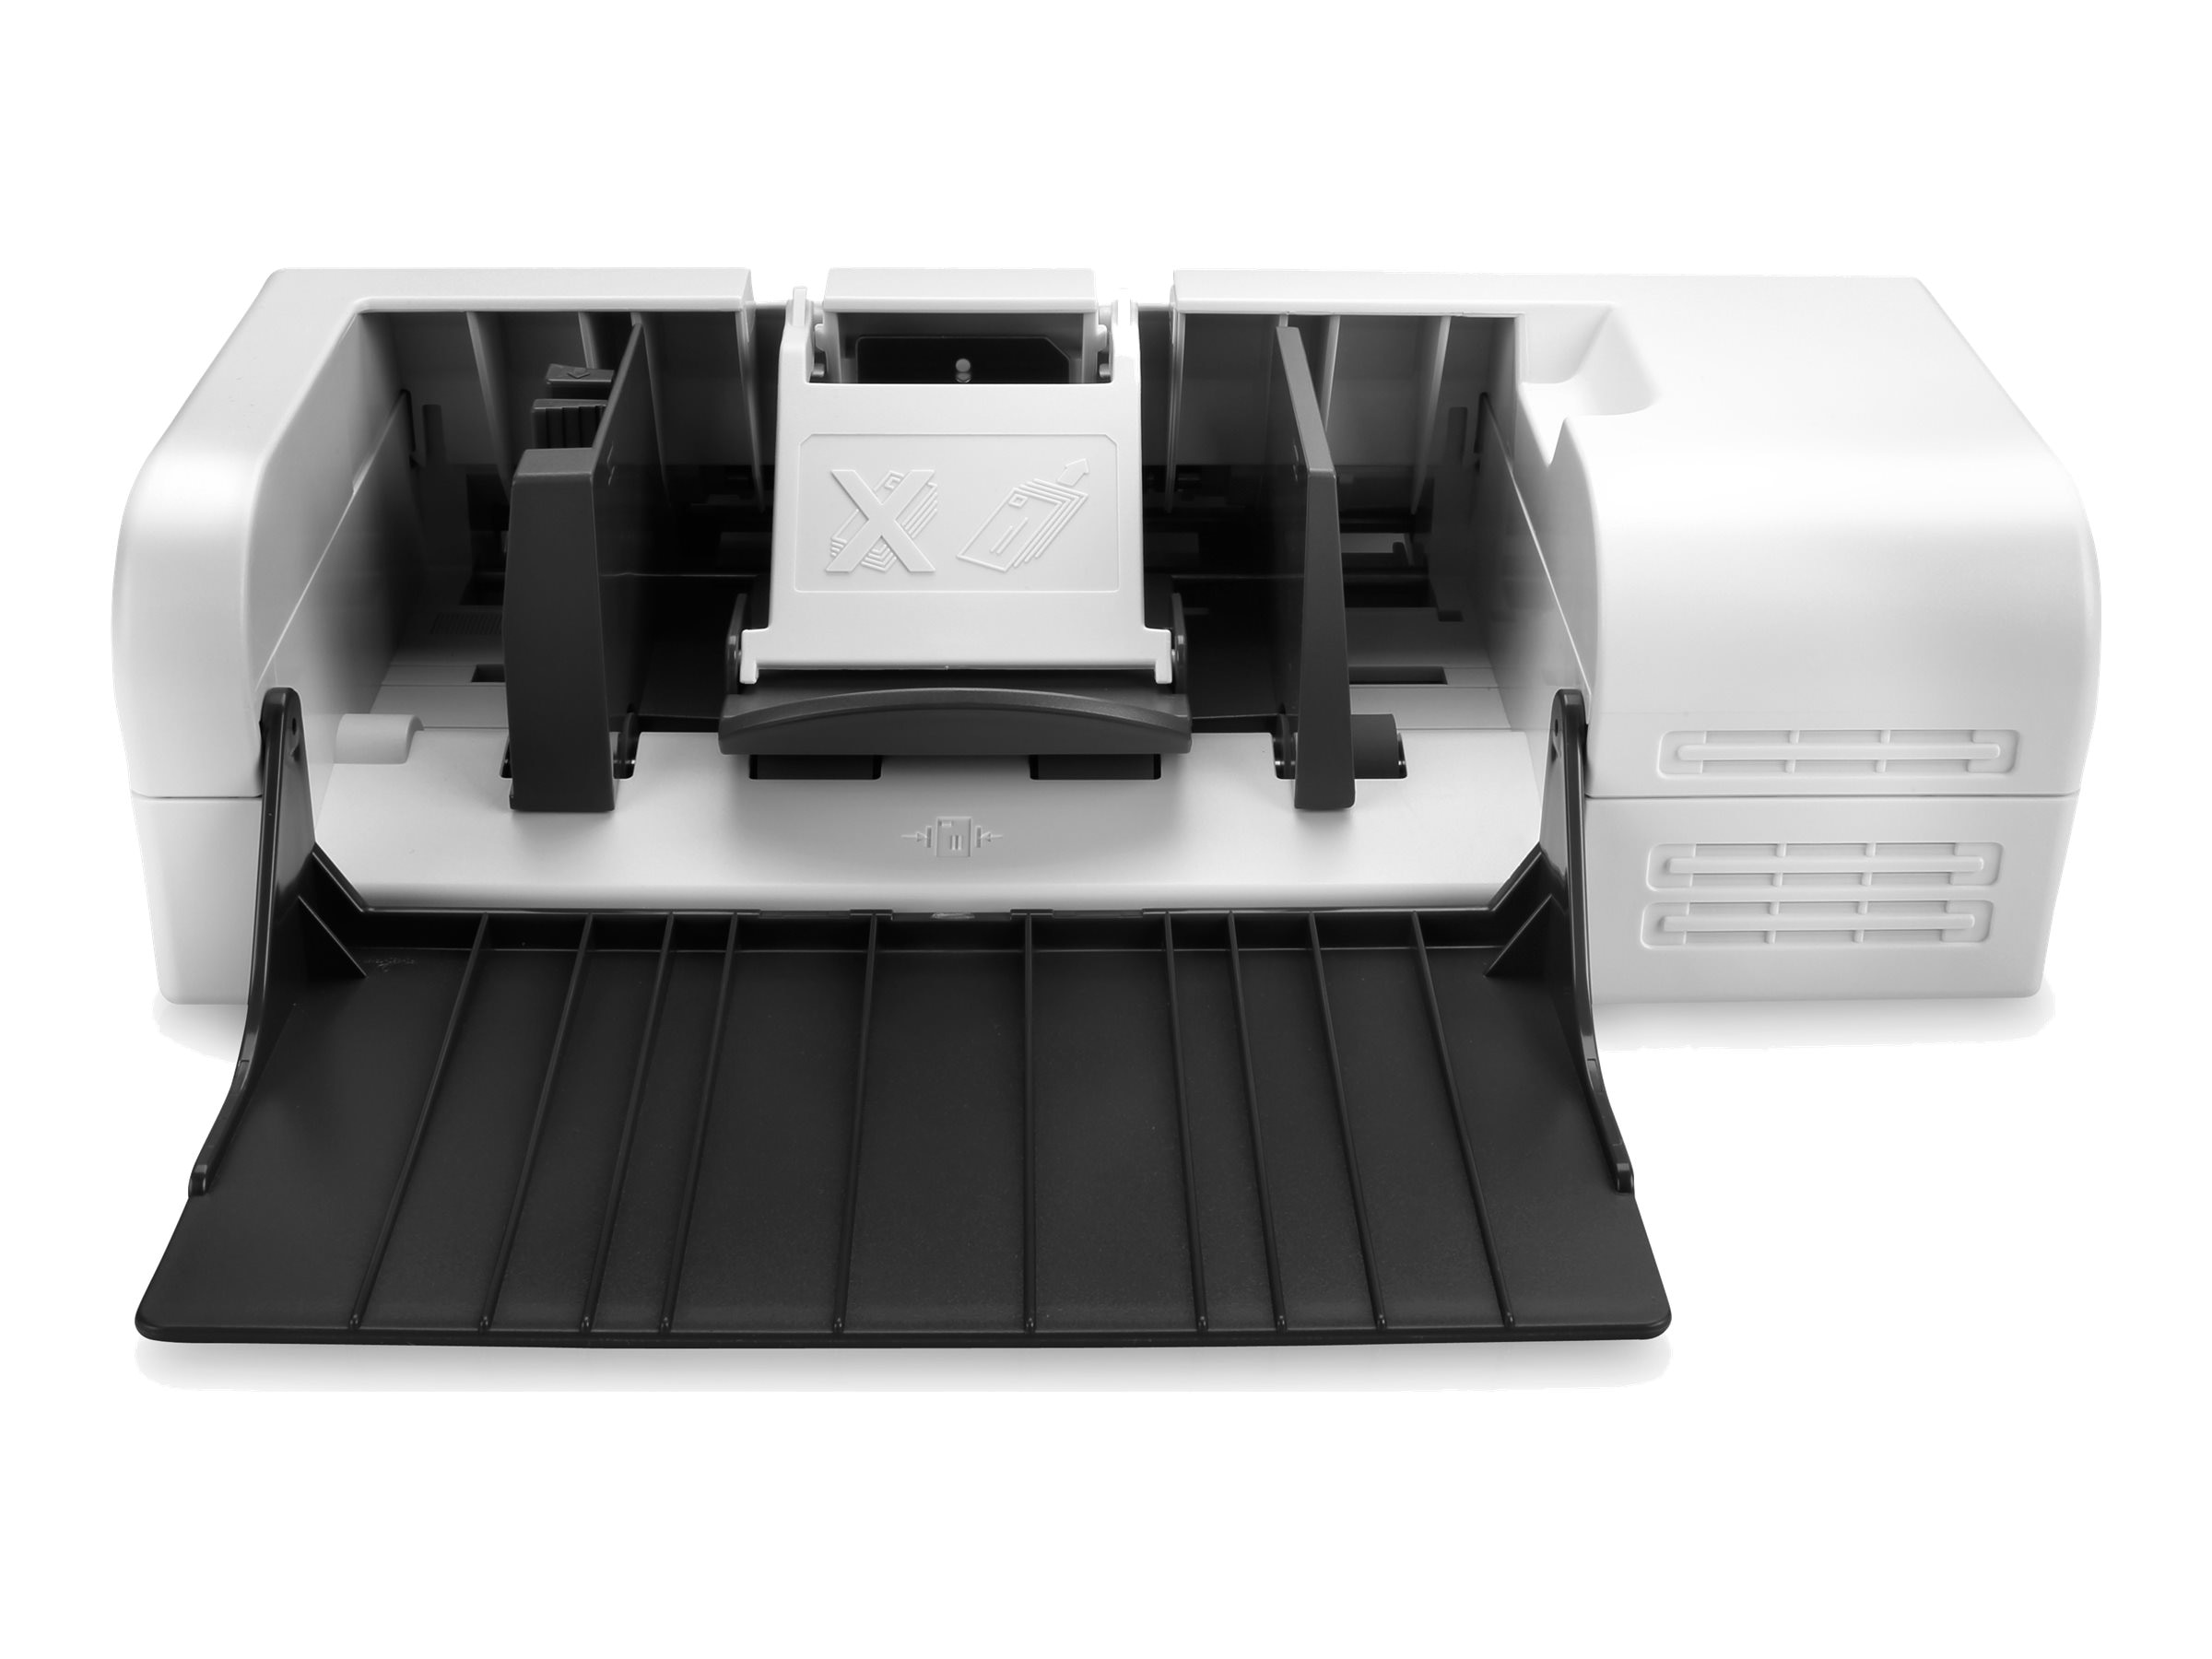 HP LaserJet 75-Sheet Envelope Feeder for HP LaserJet Enterprise M604, M605 & M606 Series, F2G74A, 19697944, Printers - Input Trays/Feeders